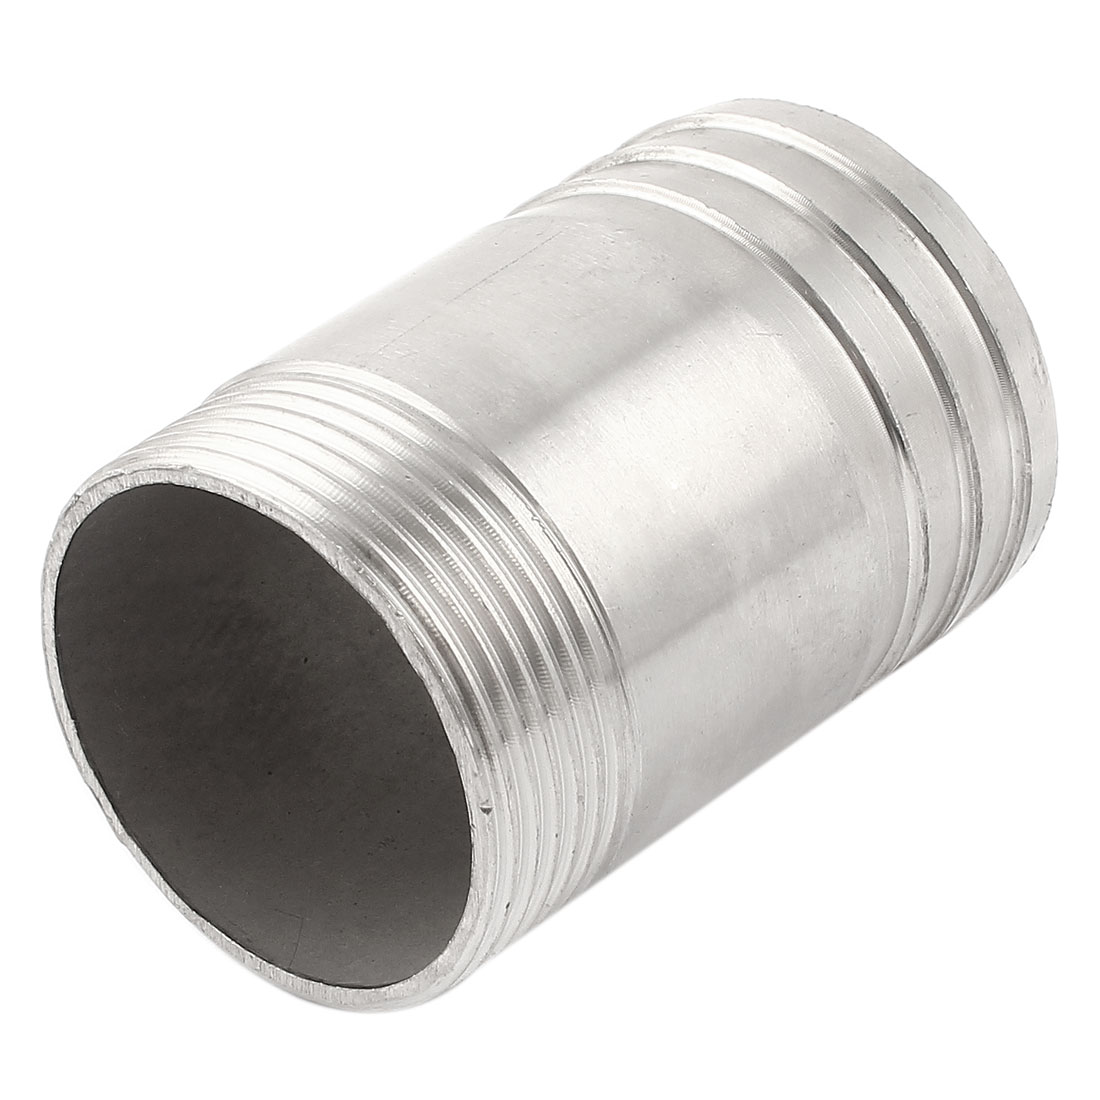 Replacement 46mm Male Thread Silver Tone Stainless Steel Pipe Barb Hose Tail Connector Adapter Fitting 47mm